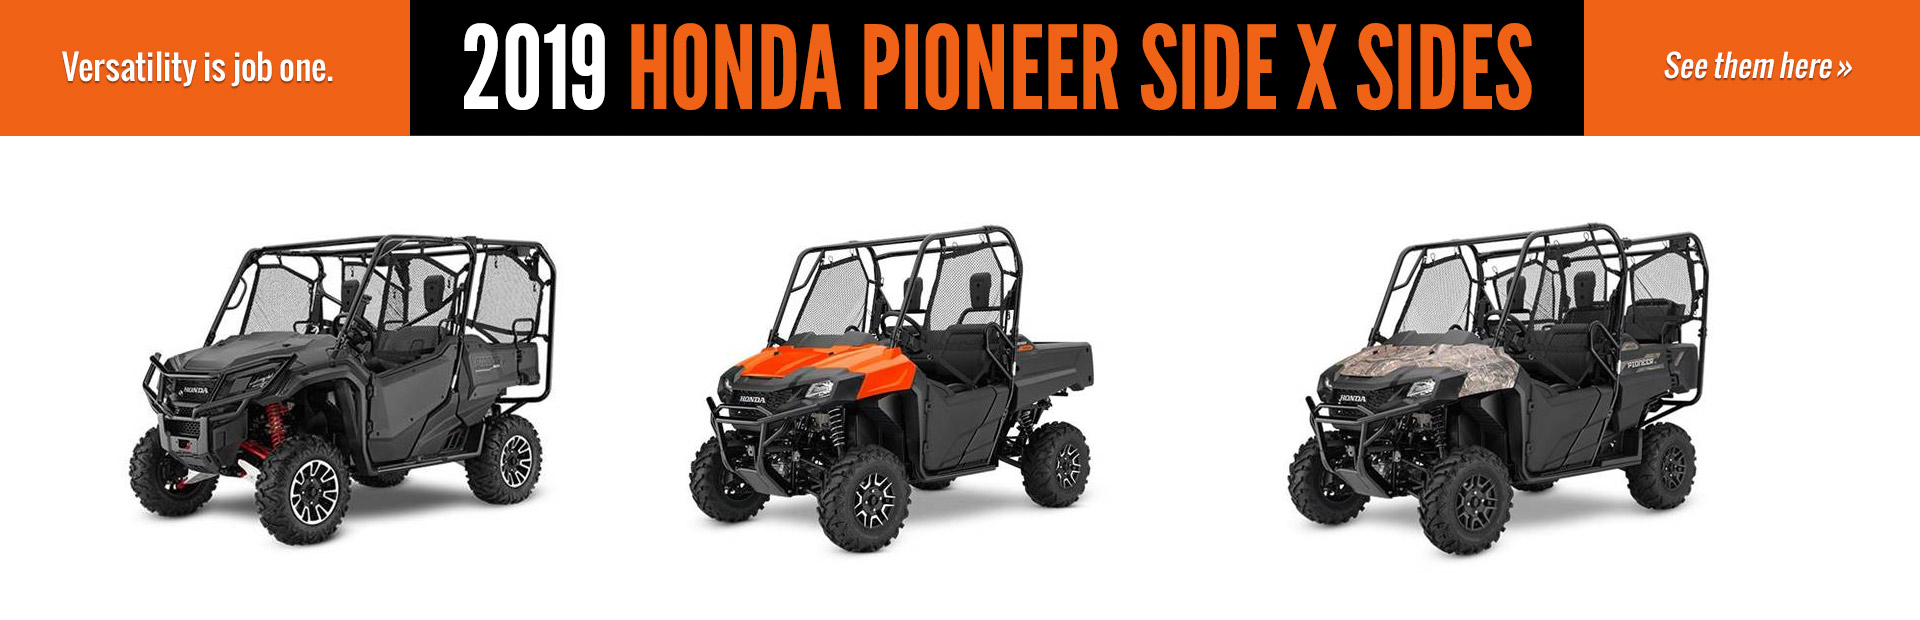 hight resolution of 2019 honda pioneer side x sides click here to view the models